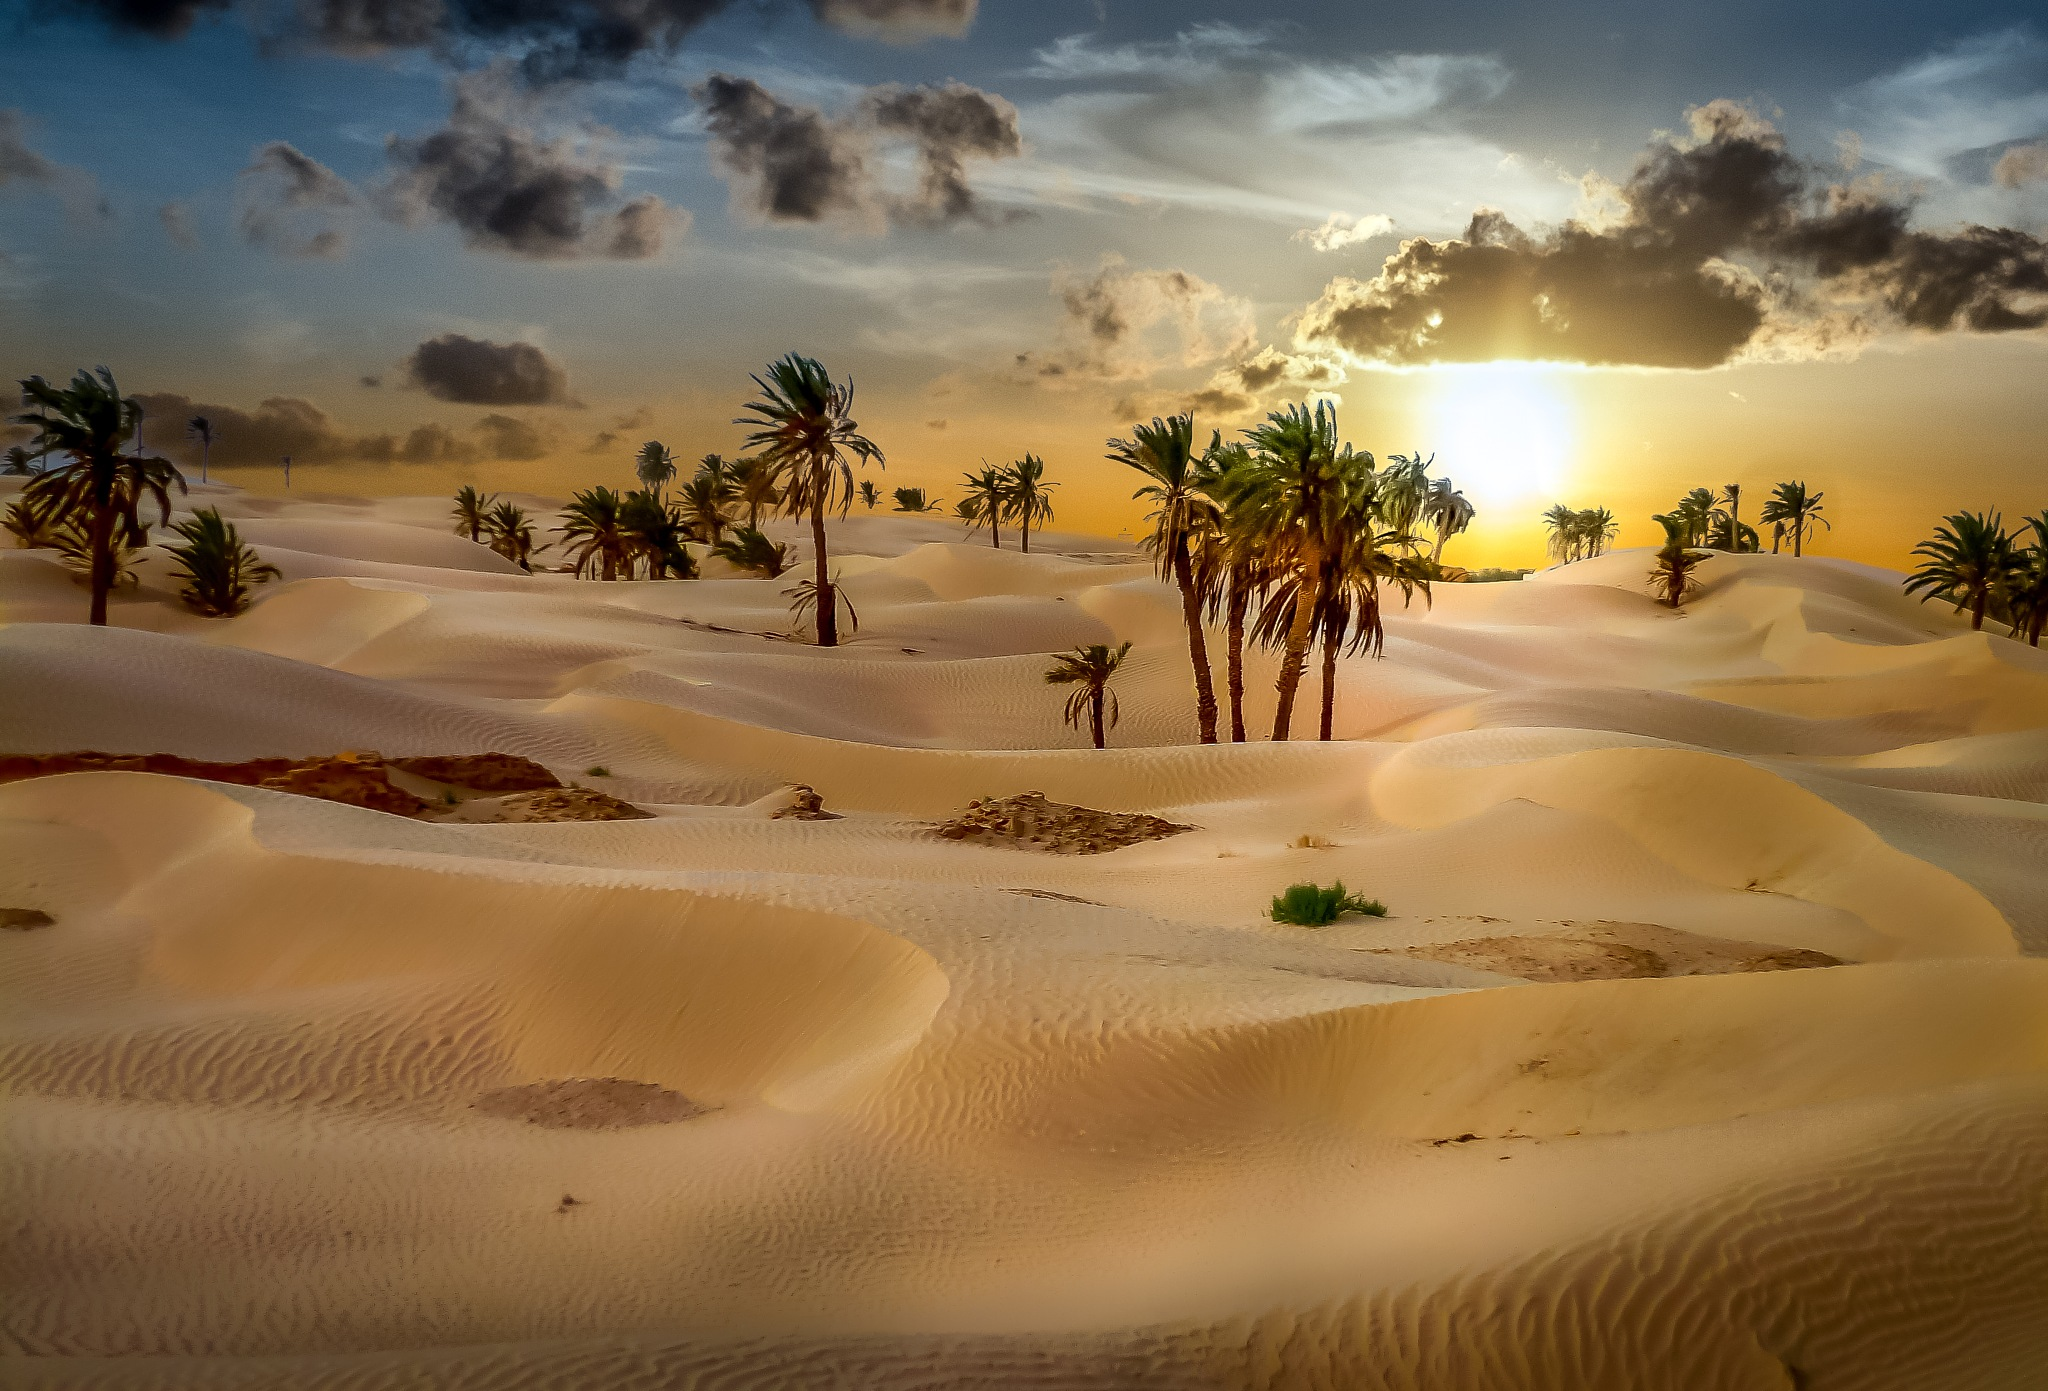 In the desert by Grisel